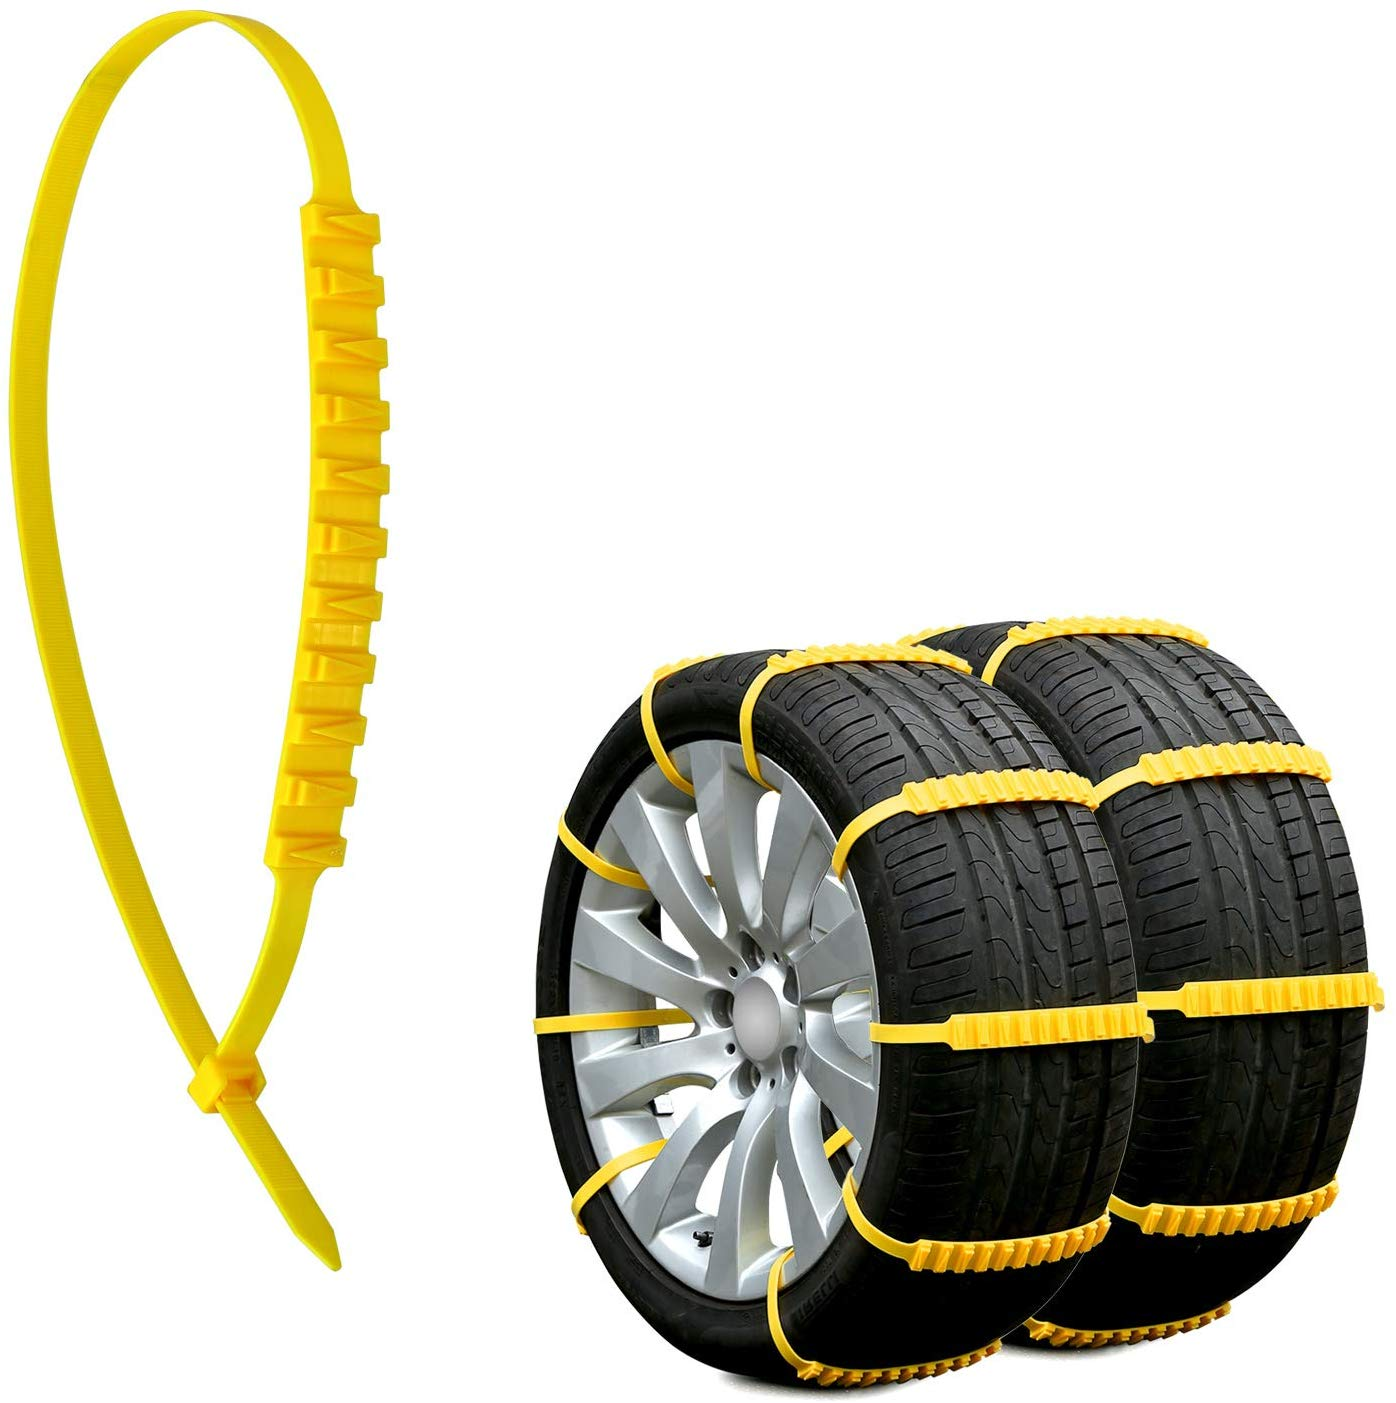 PTNHZ 10 PCS Snow Tire Chain Anti-Skid Emergency Winter Driving for Car Truck SUV